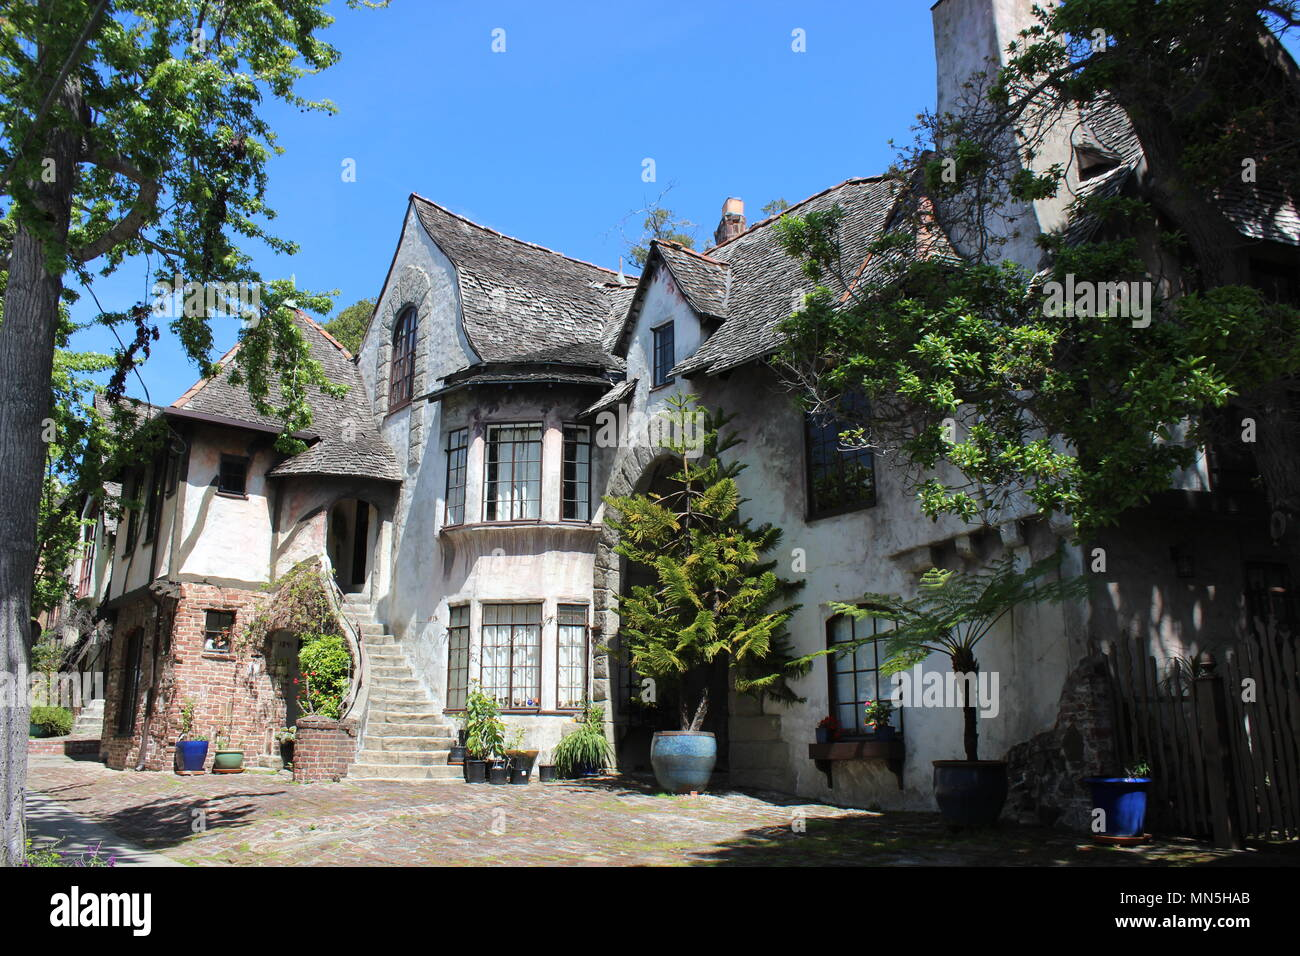 Normandy Village Northside Berkeley California Stock Photo Alamy